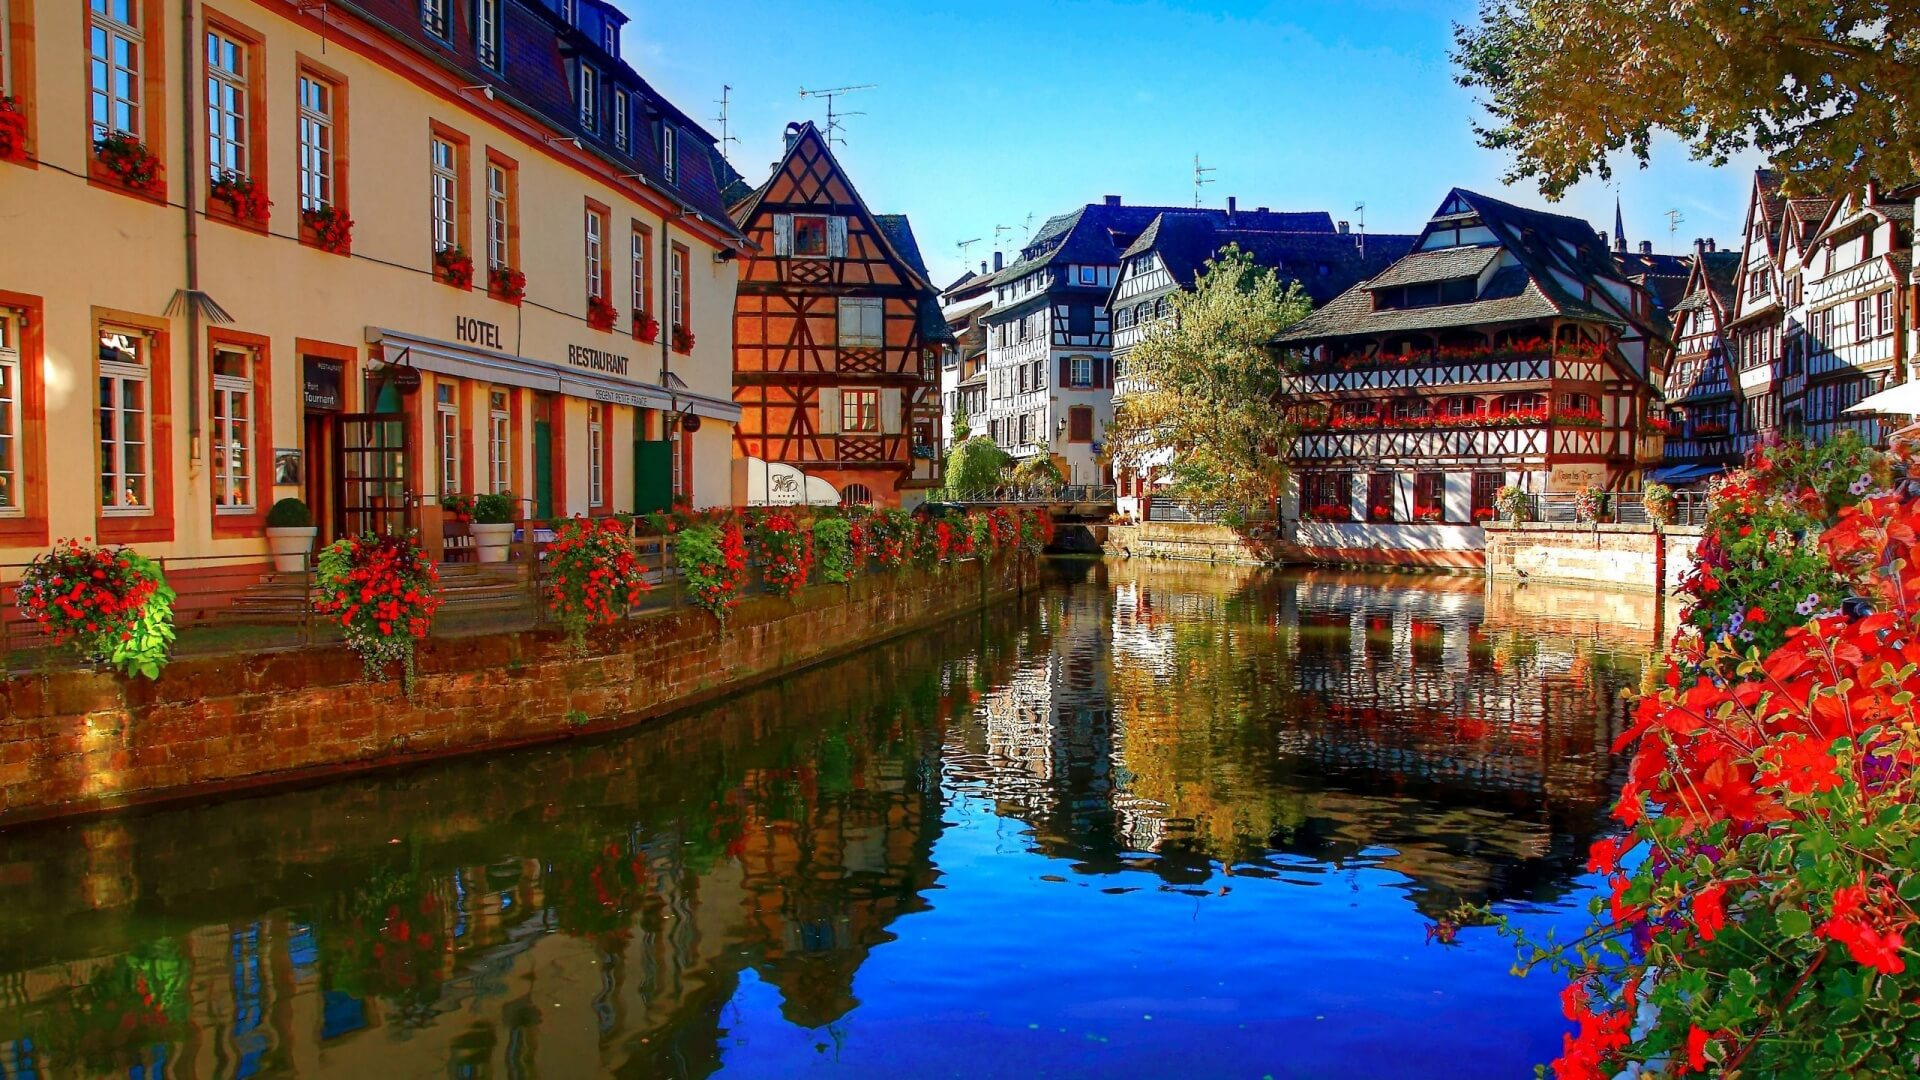 Cheap flights to Strasbourg